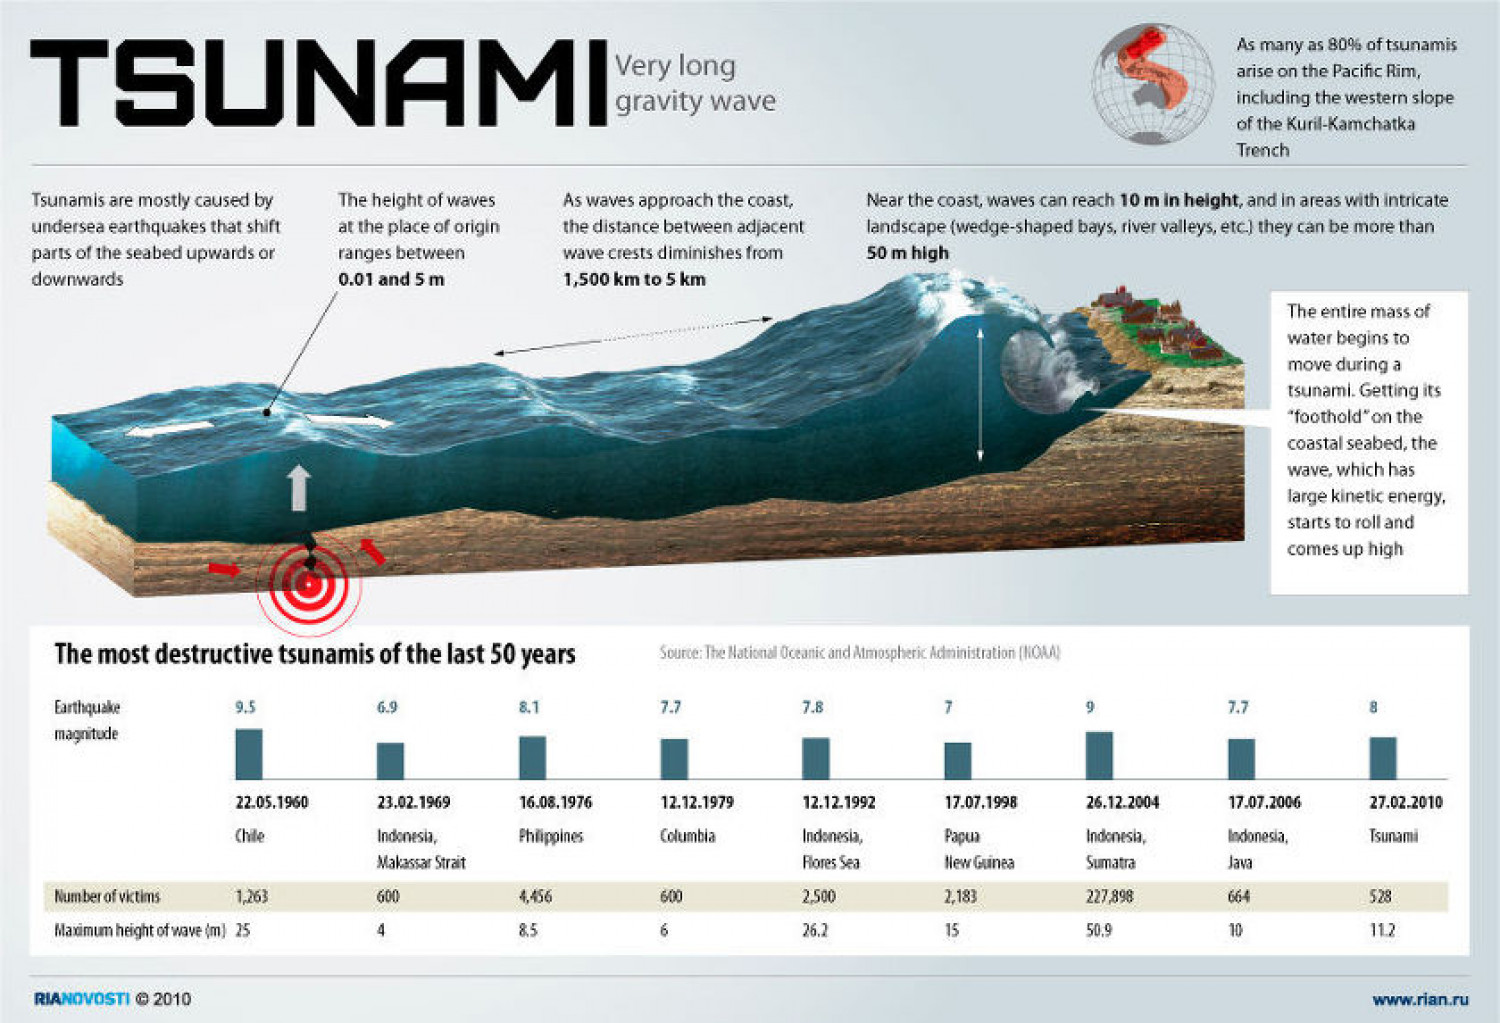 Tsunami: Very Long Gravity Wave | Visual.ly